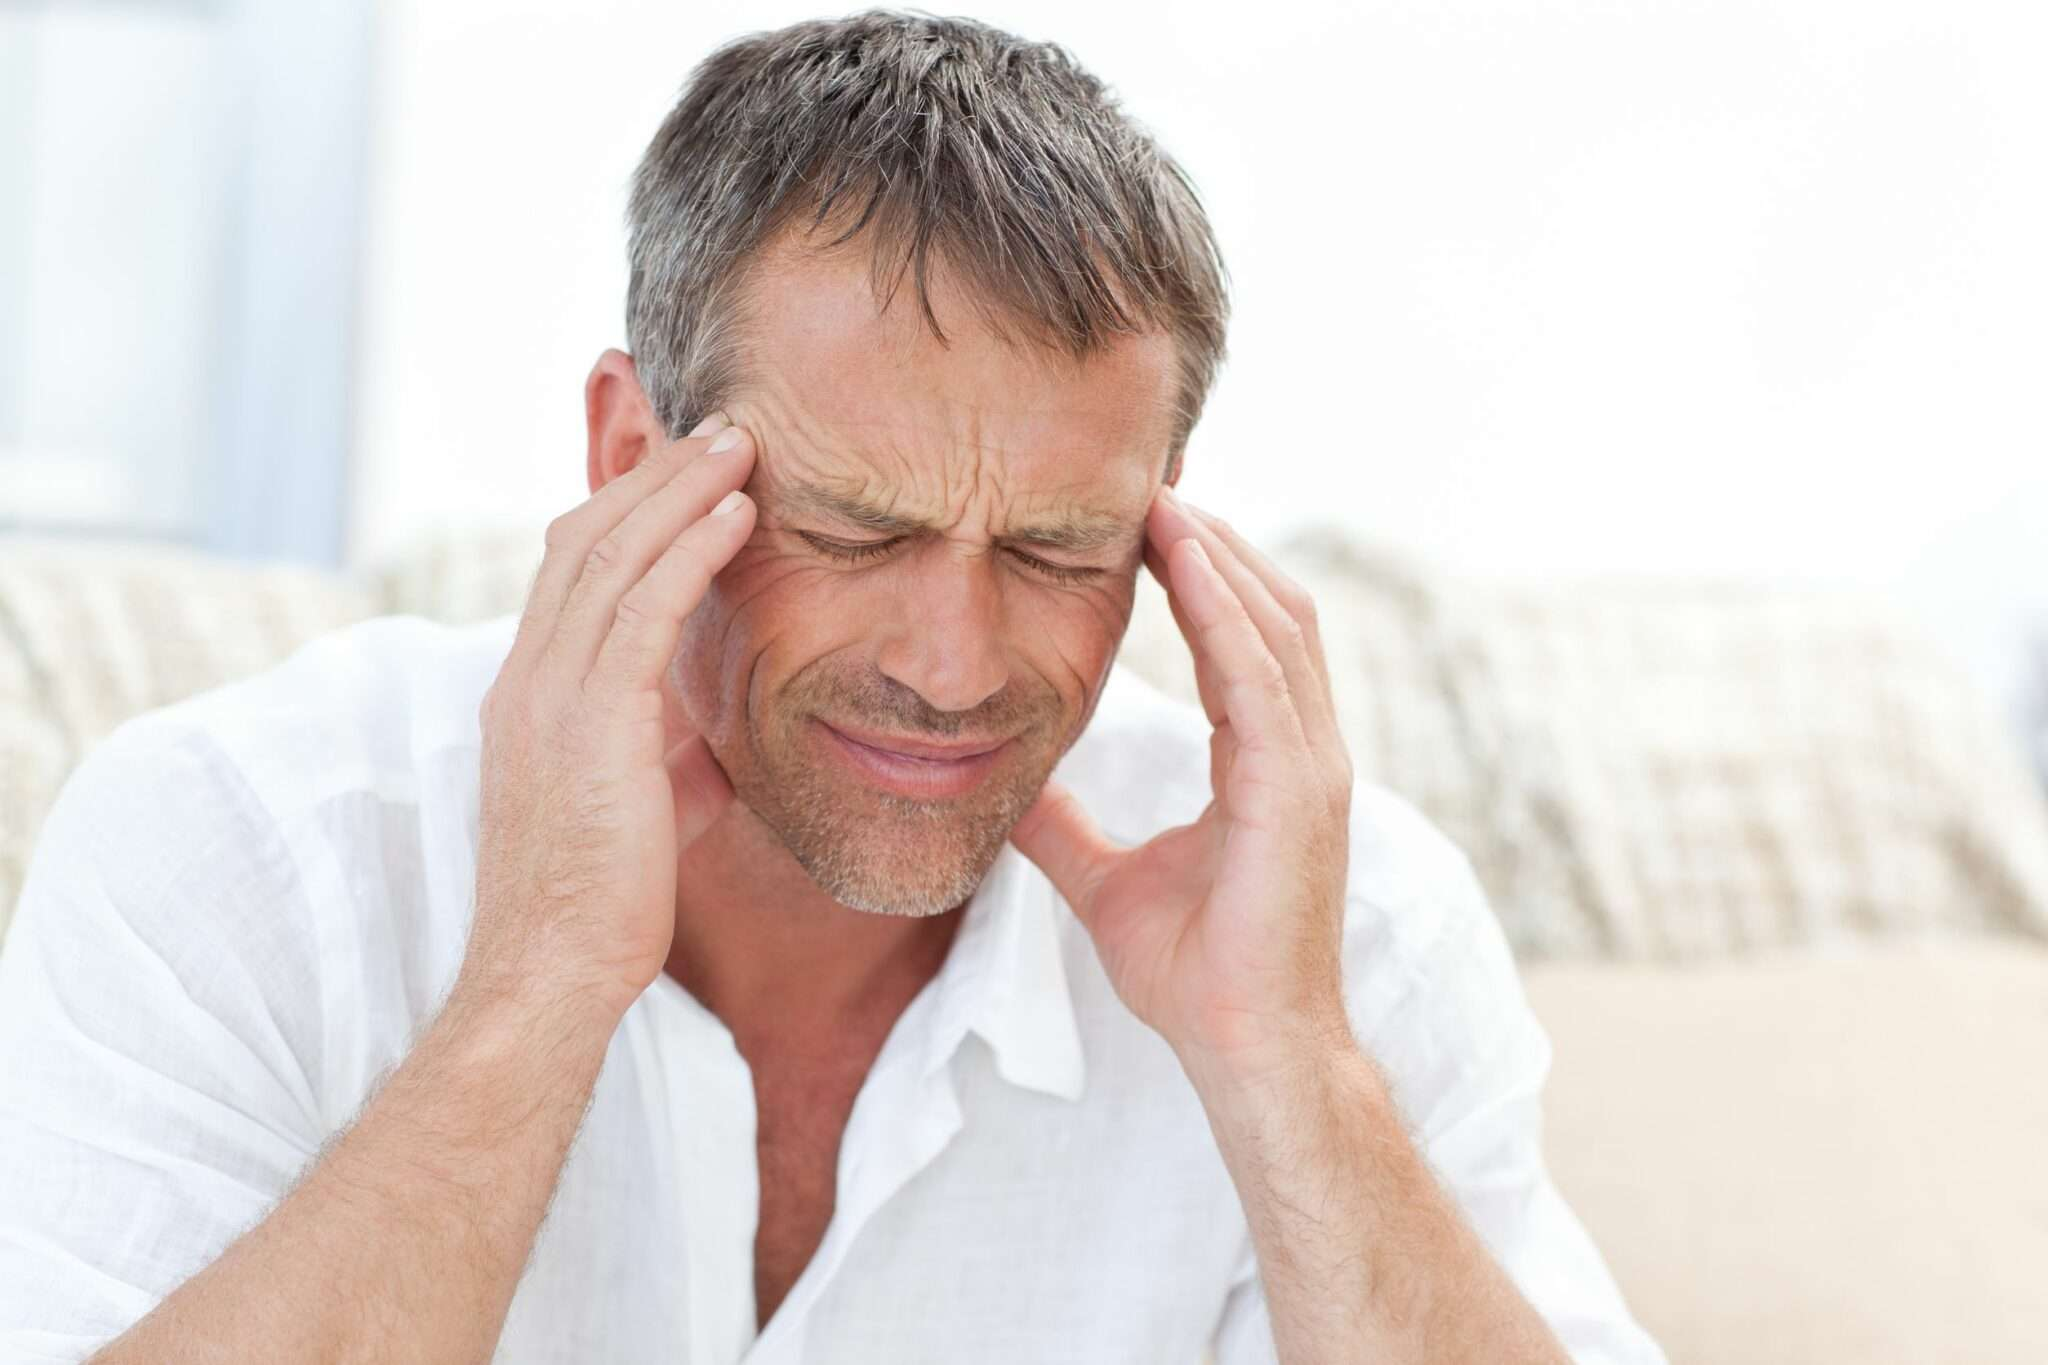 Head Pain, Chronic Headaches | HollowBrook Dental Colorado Springs